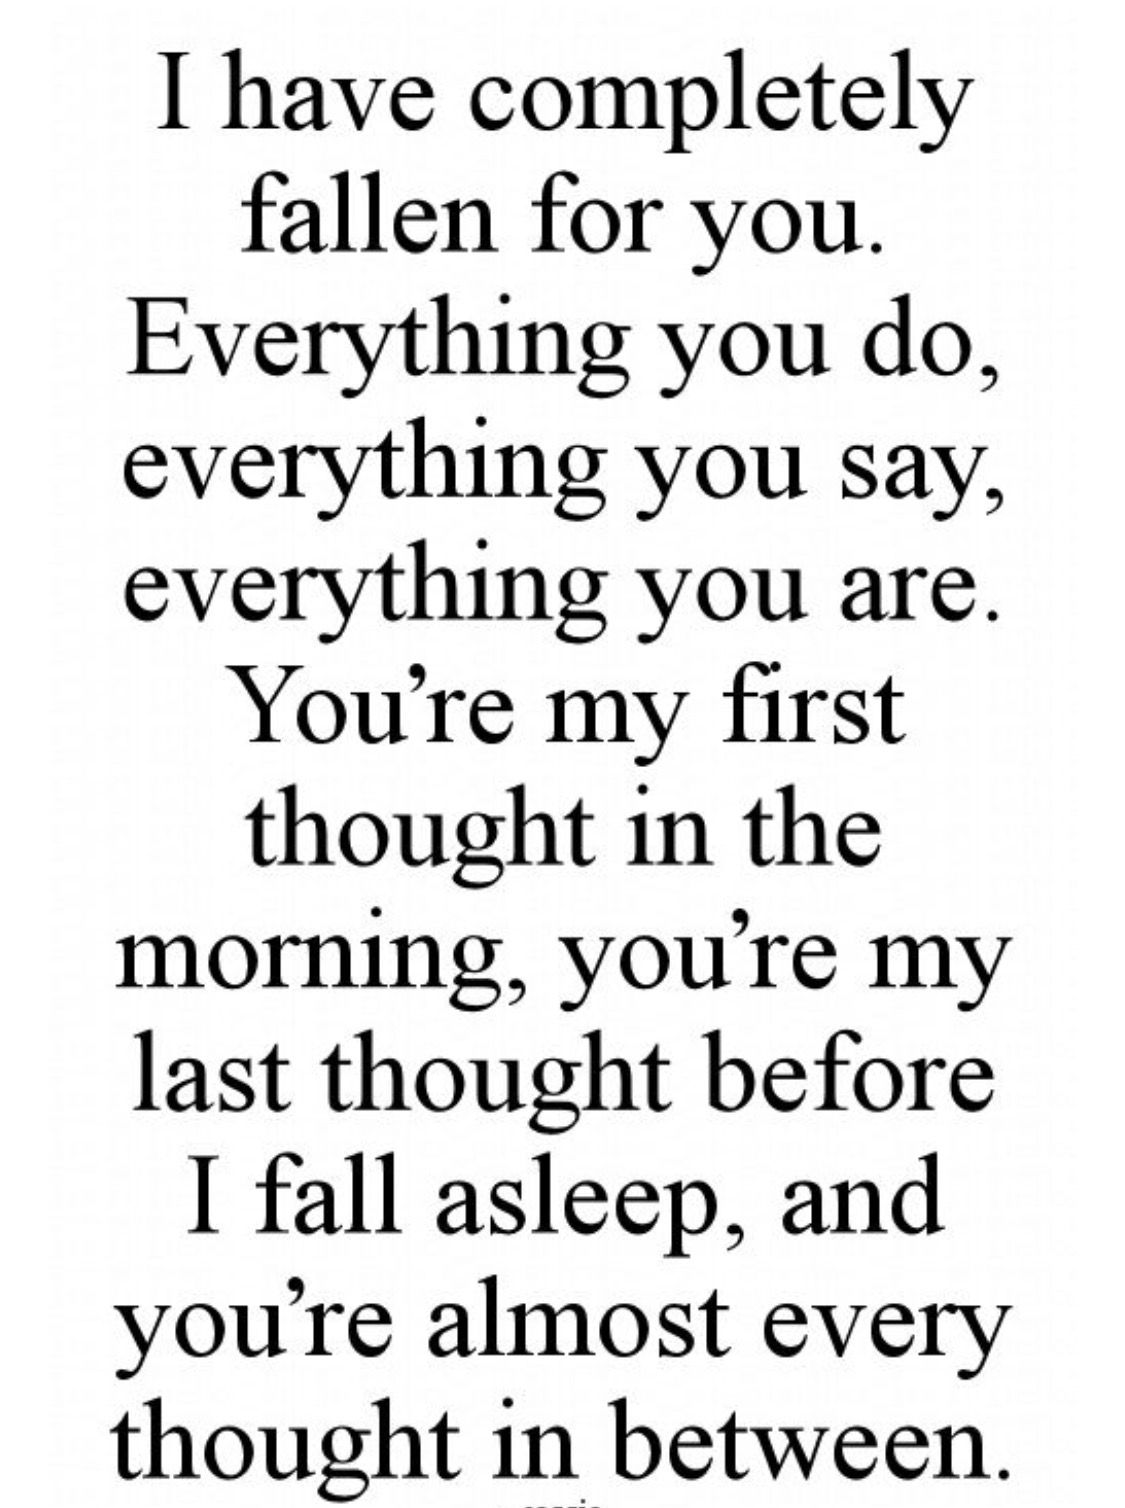 Fall More Love You Everyday Quotes Archidev